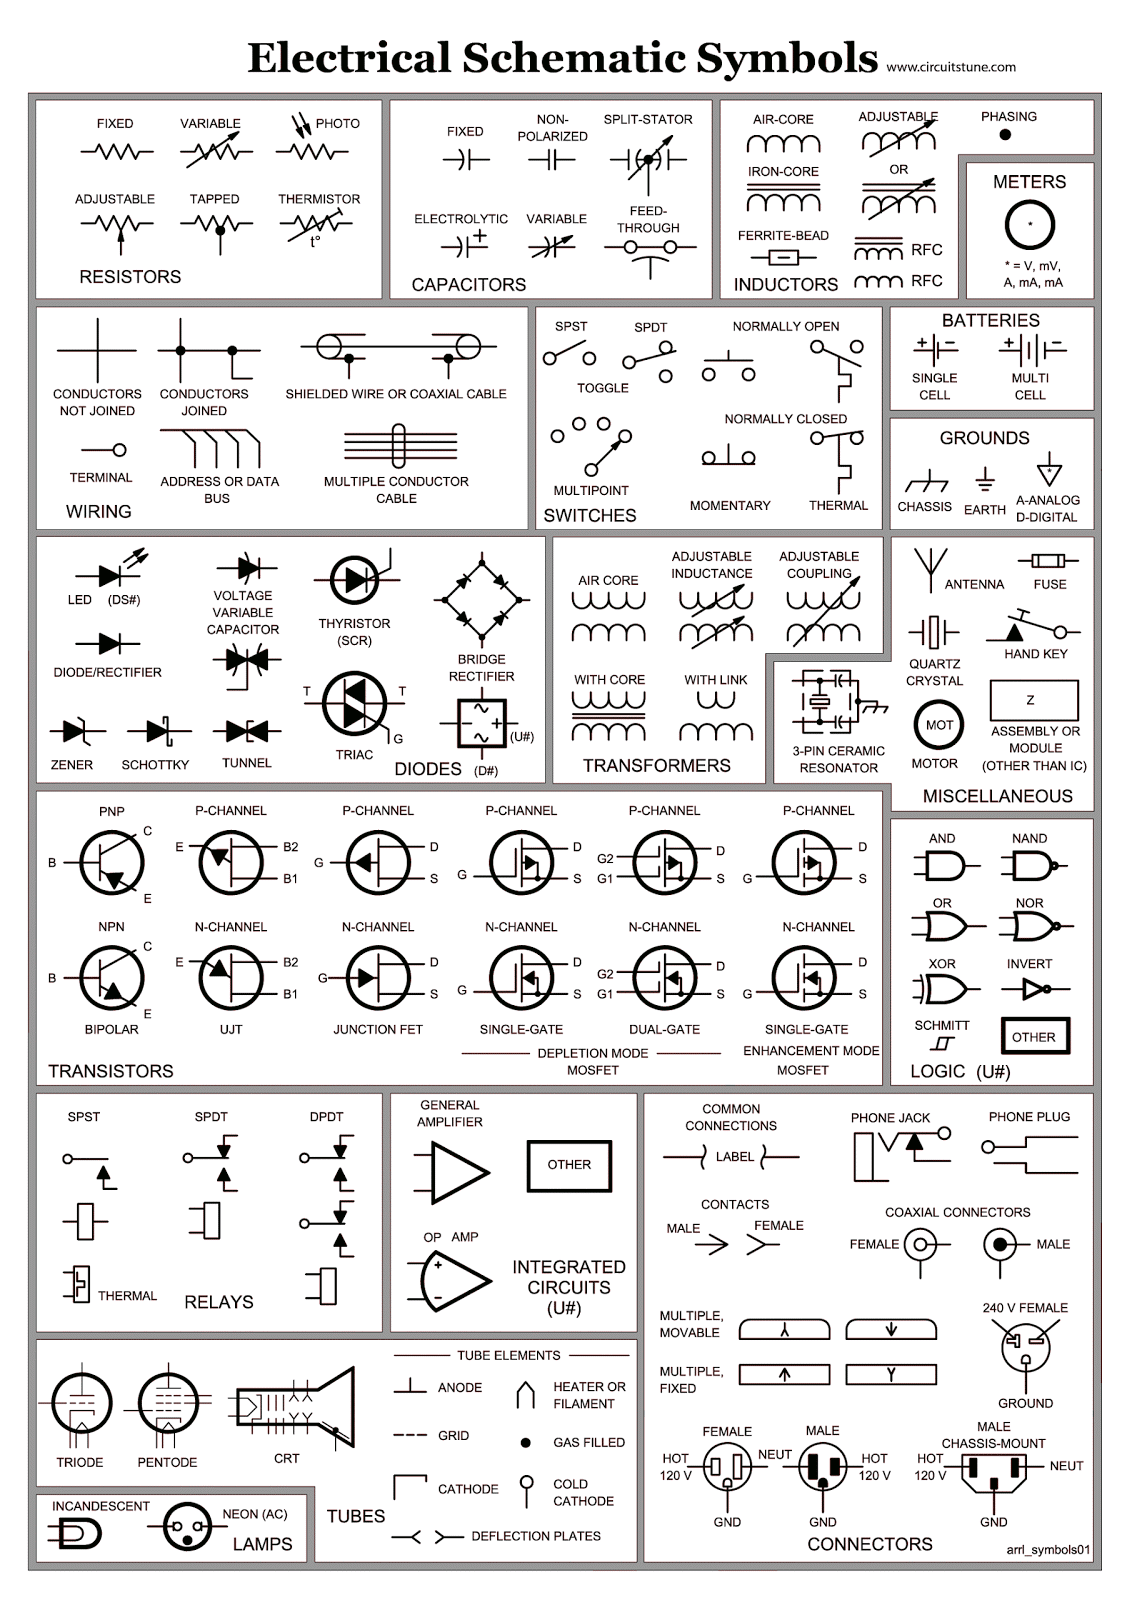 Schematic Symbols Chart Line Diagrams And General Electrical